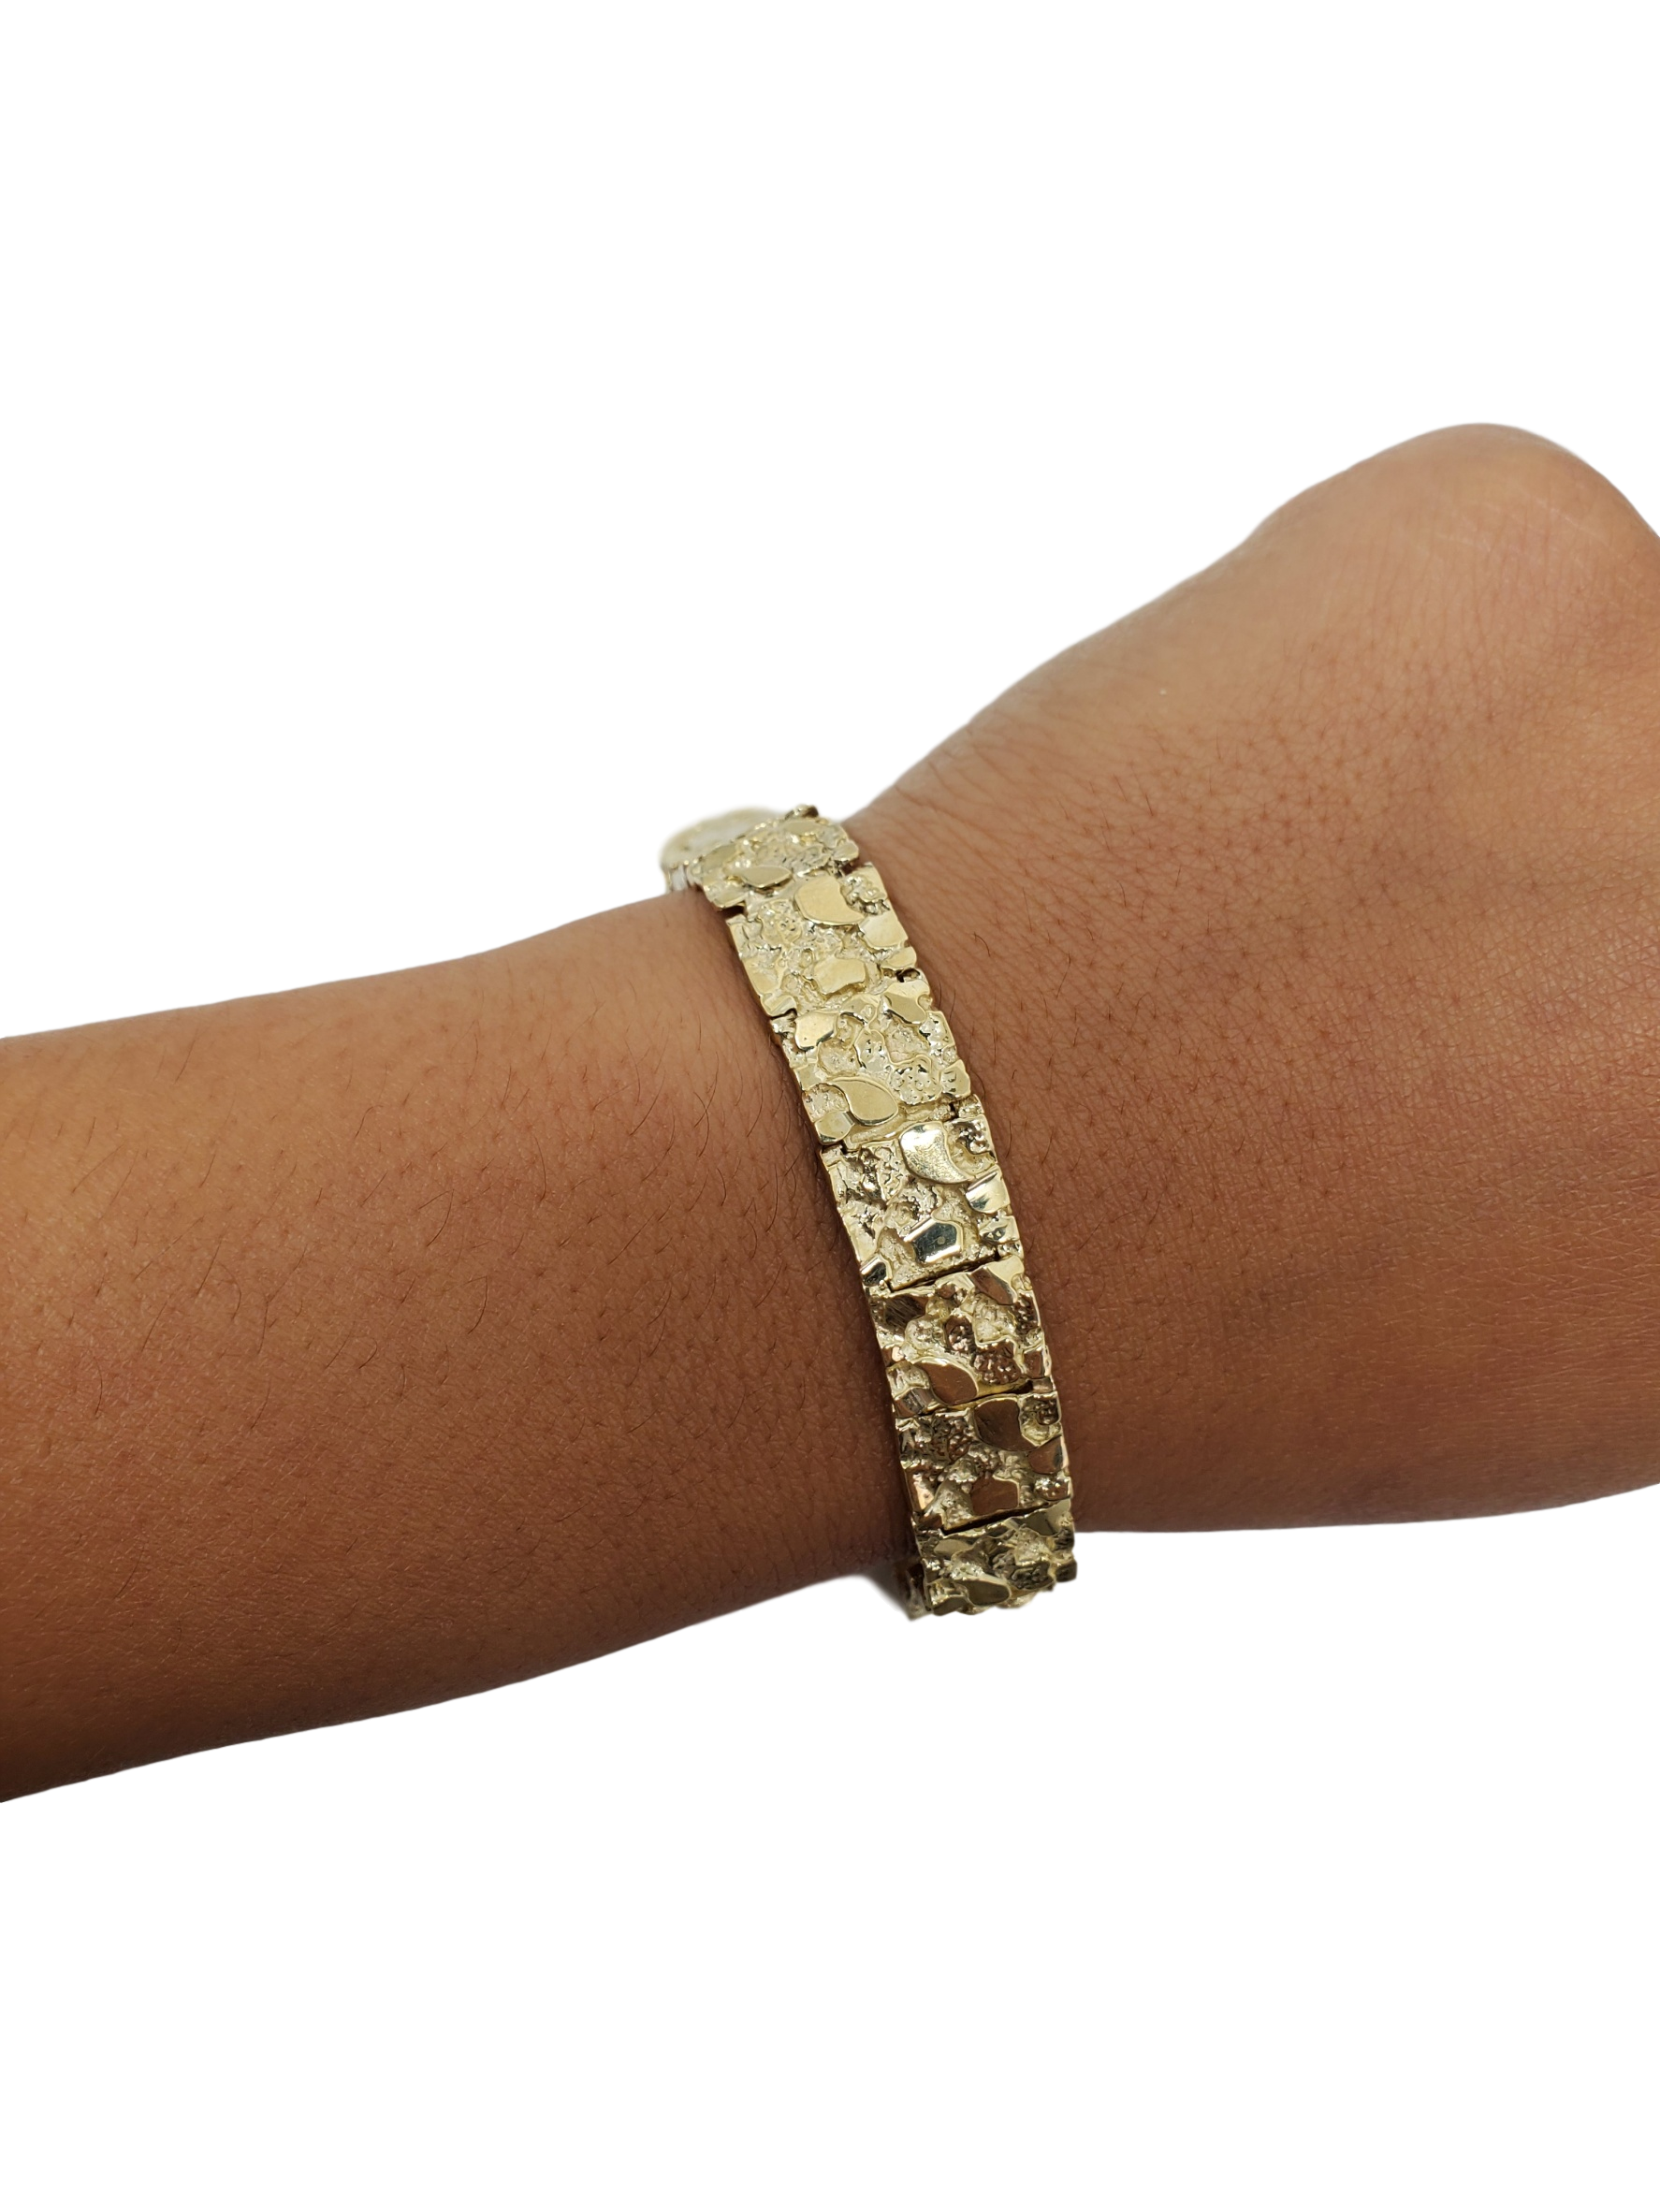 Bracelet Nugget 11 mm en or 10K modele 2020